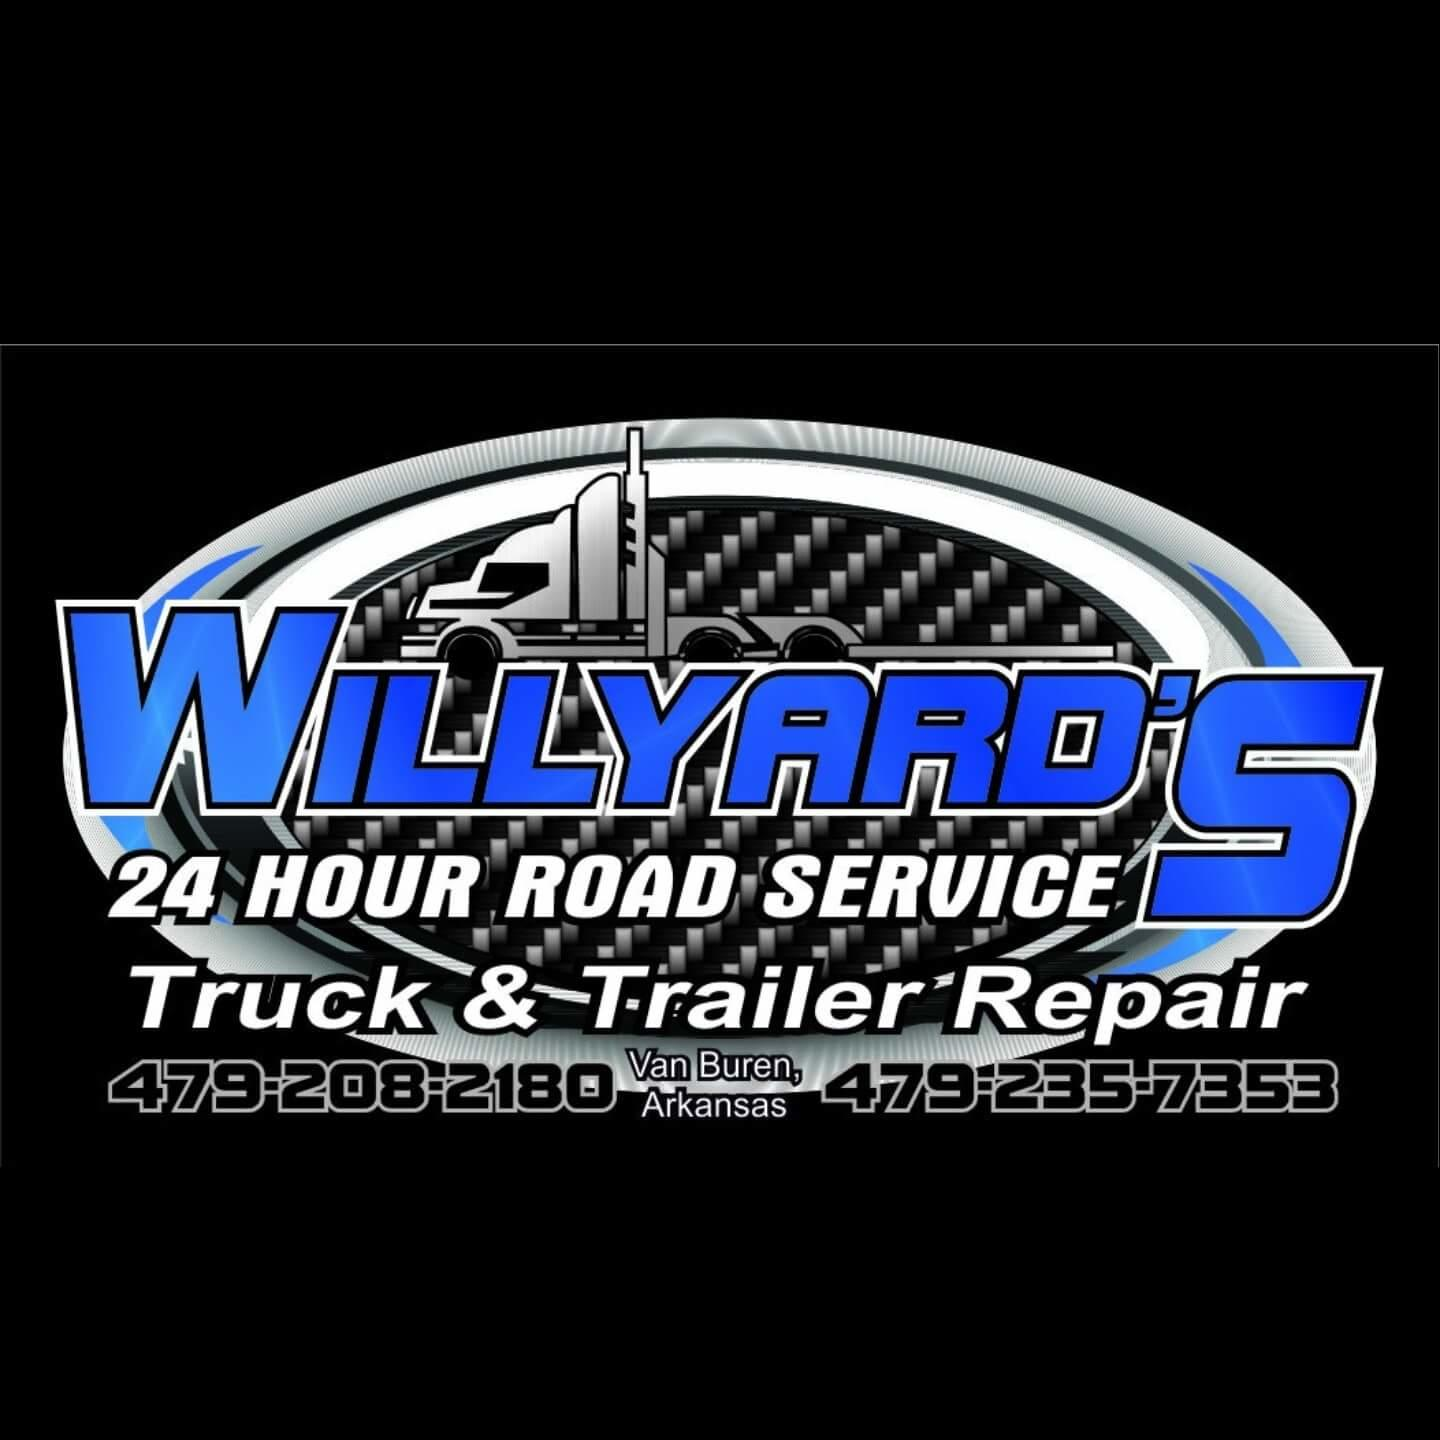 Willyard's Truck & Trailer Repair